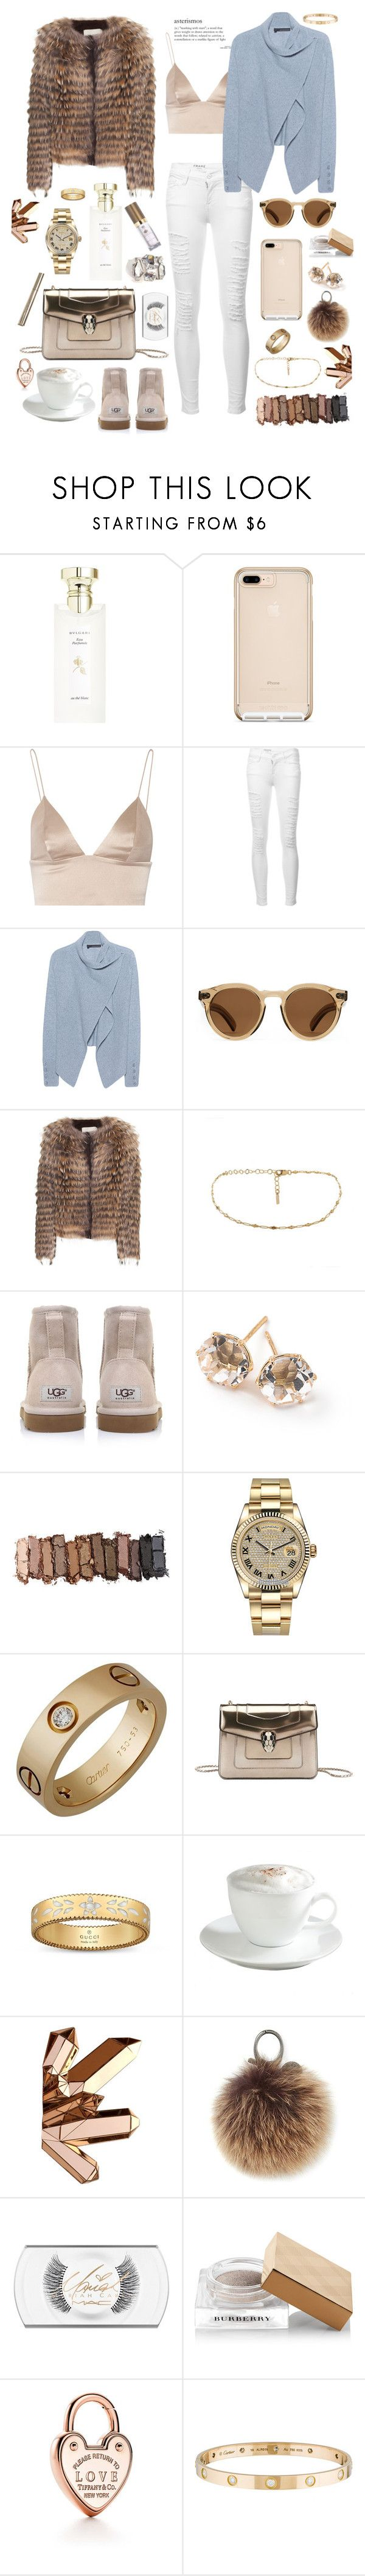 """""""Asterismos"""" by iii-i-mcmxcv ❤ liked on Polyvore featuring Bulgari, T By Alexander Wang, Frame, 360 Sweater, Illesteva, Yves Salomon, UGG Australia, Ippolita, Urban Decay and Rolex"""